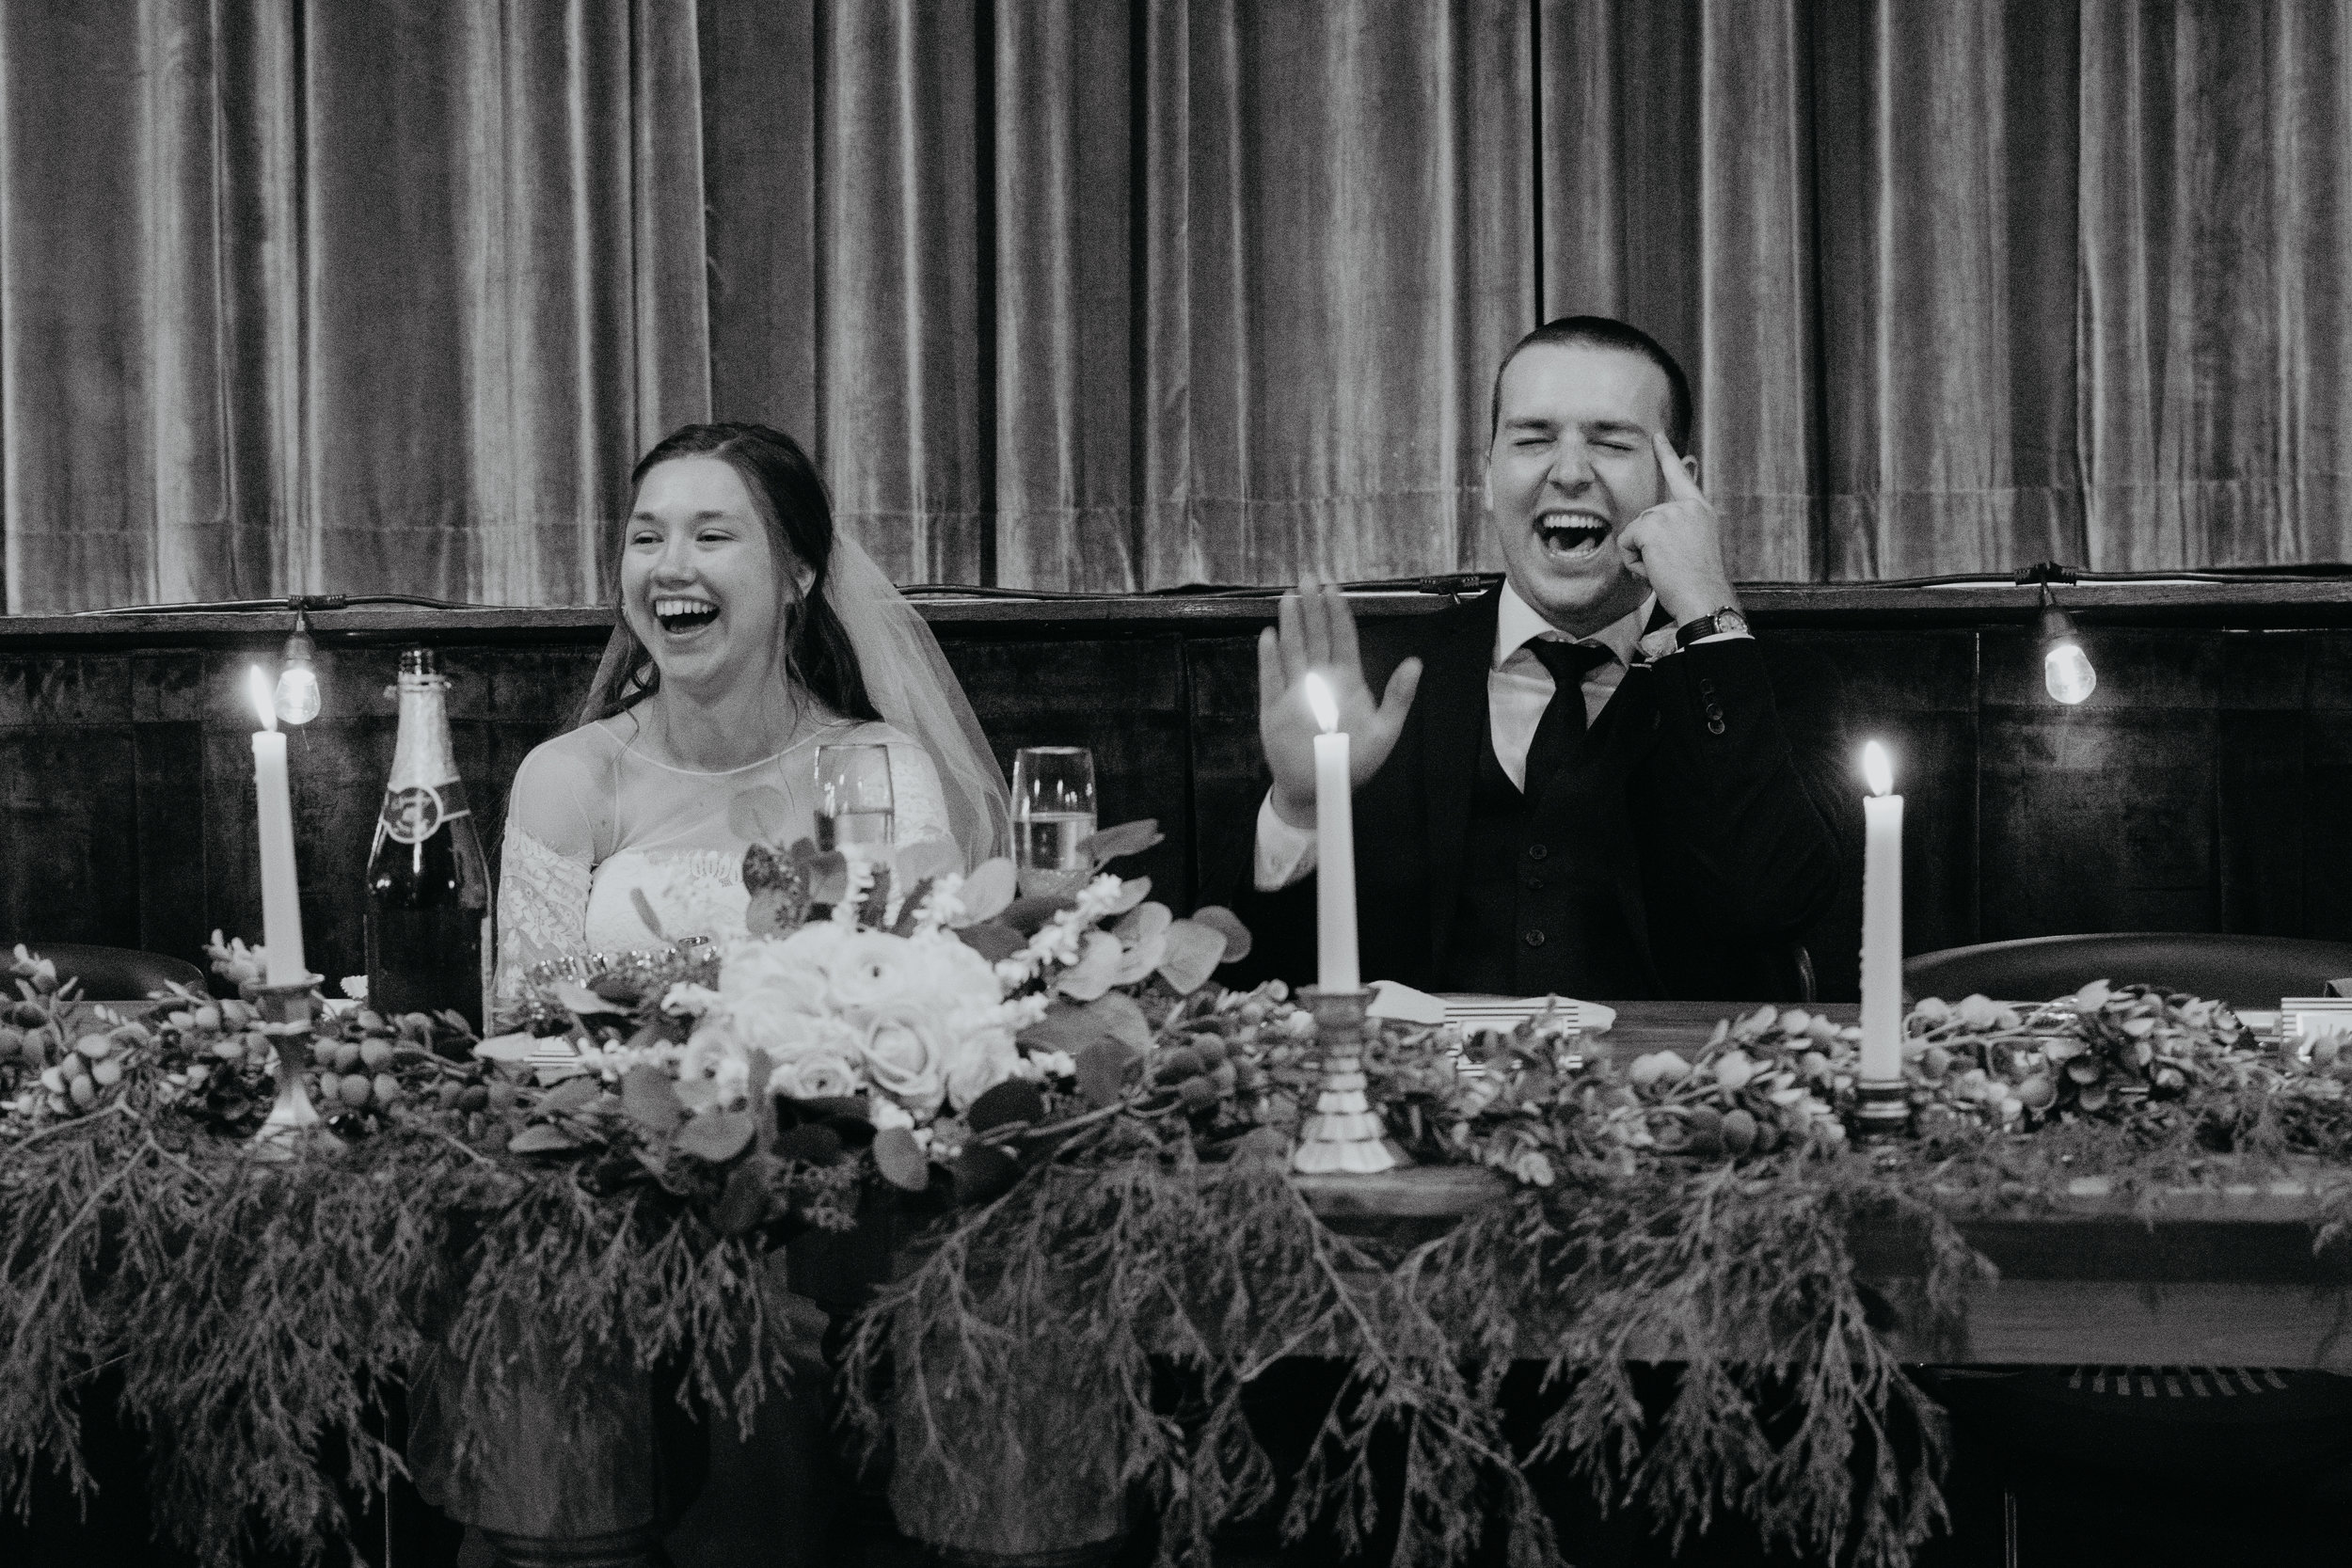 When your best friend is your best man and has some funny stories!